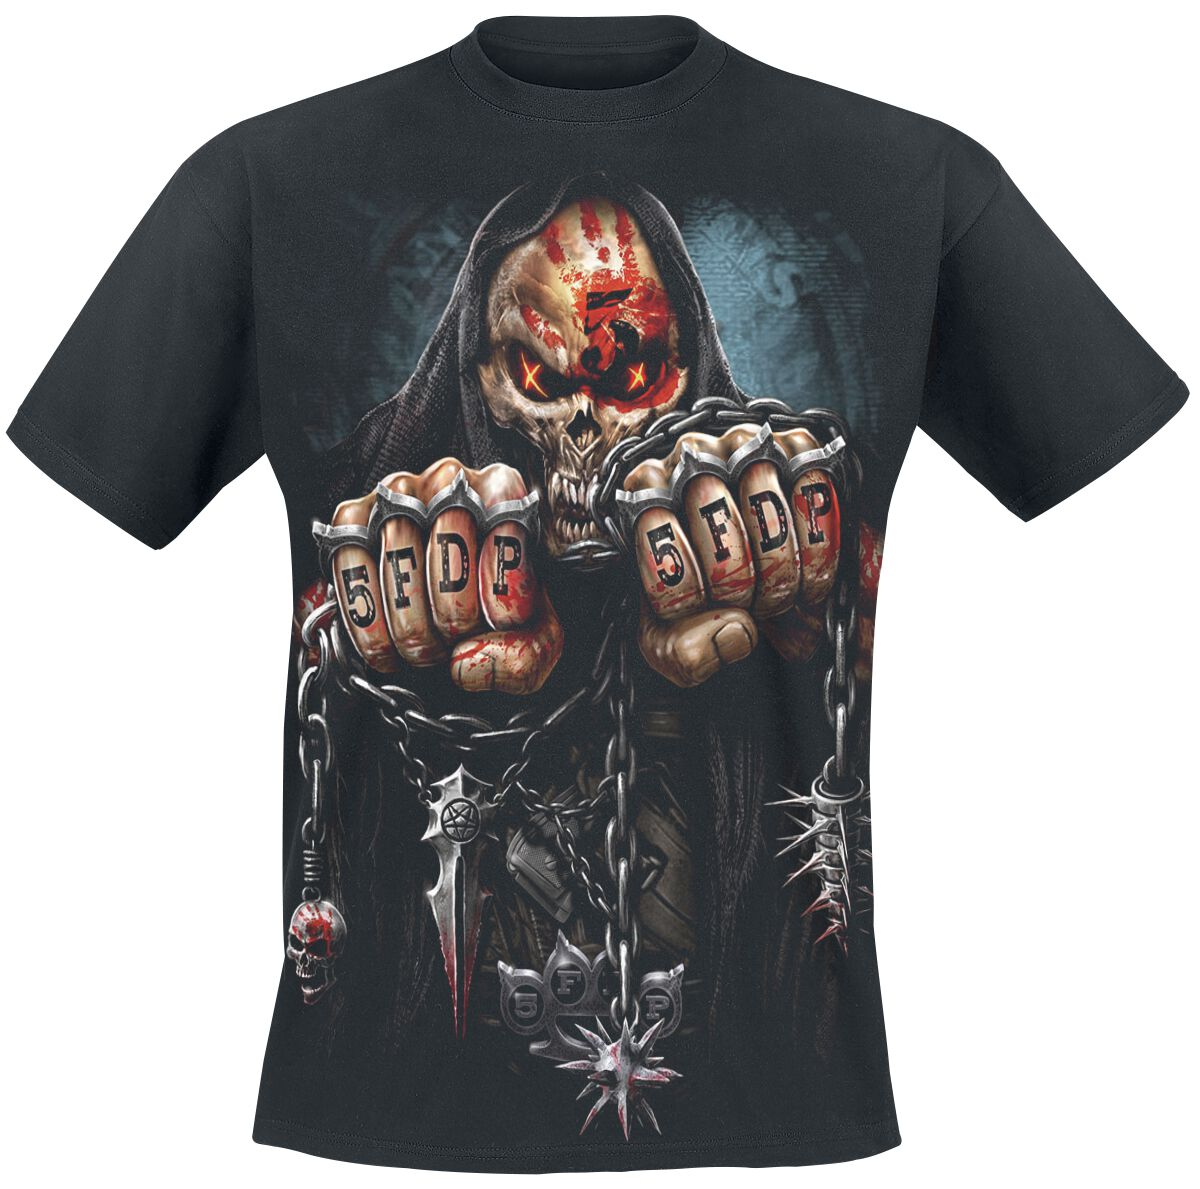 Five Finger Death Punch Game Over T-Shirt black